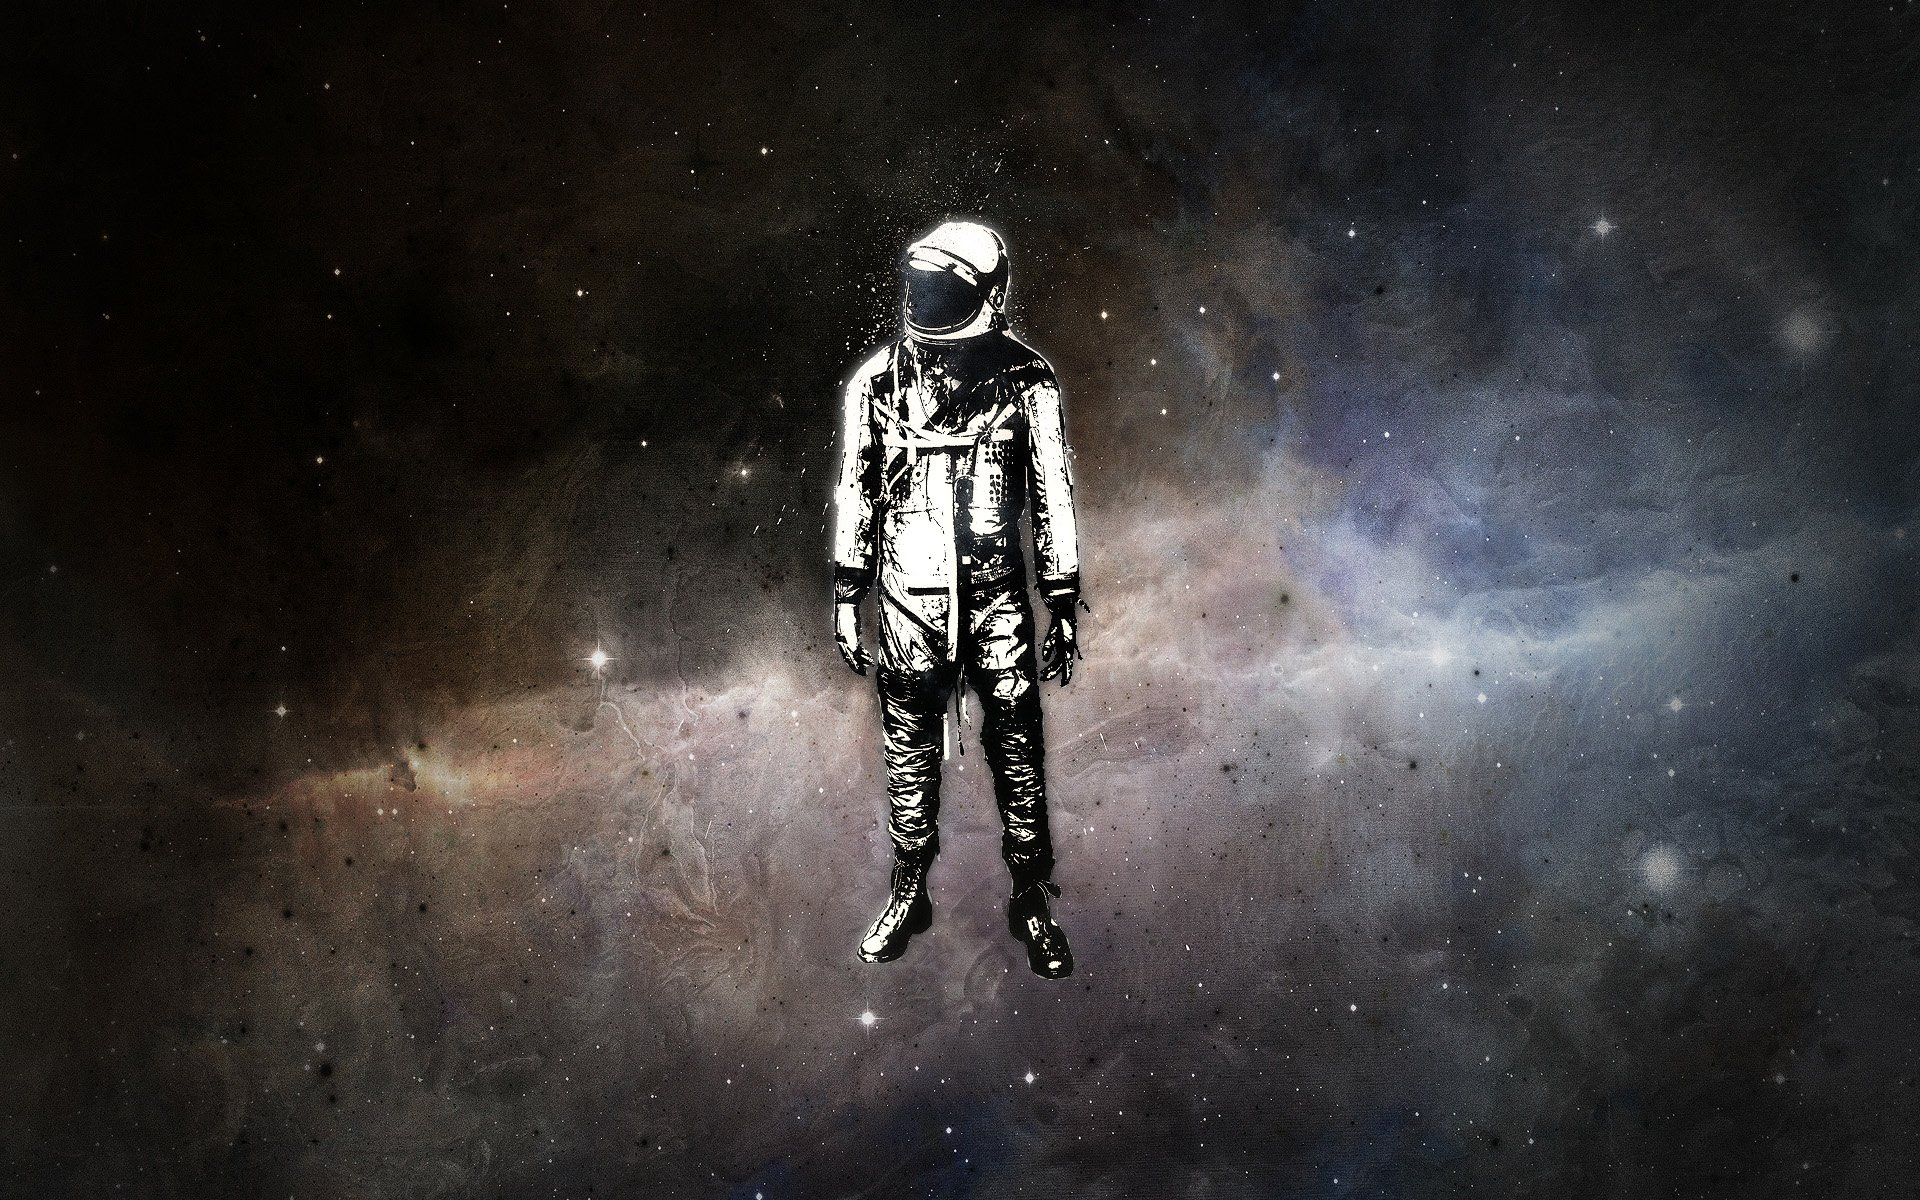 Astronaut by Unknown wallpaper